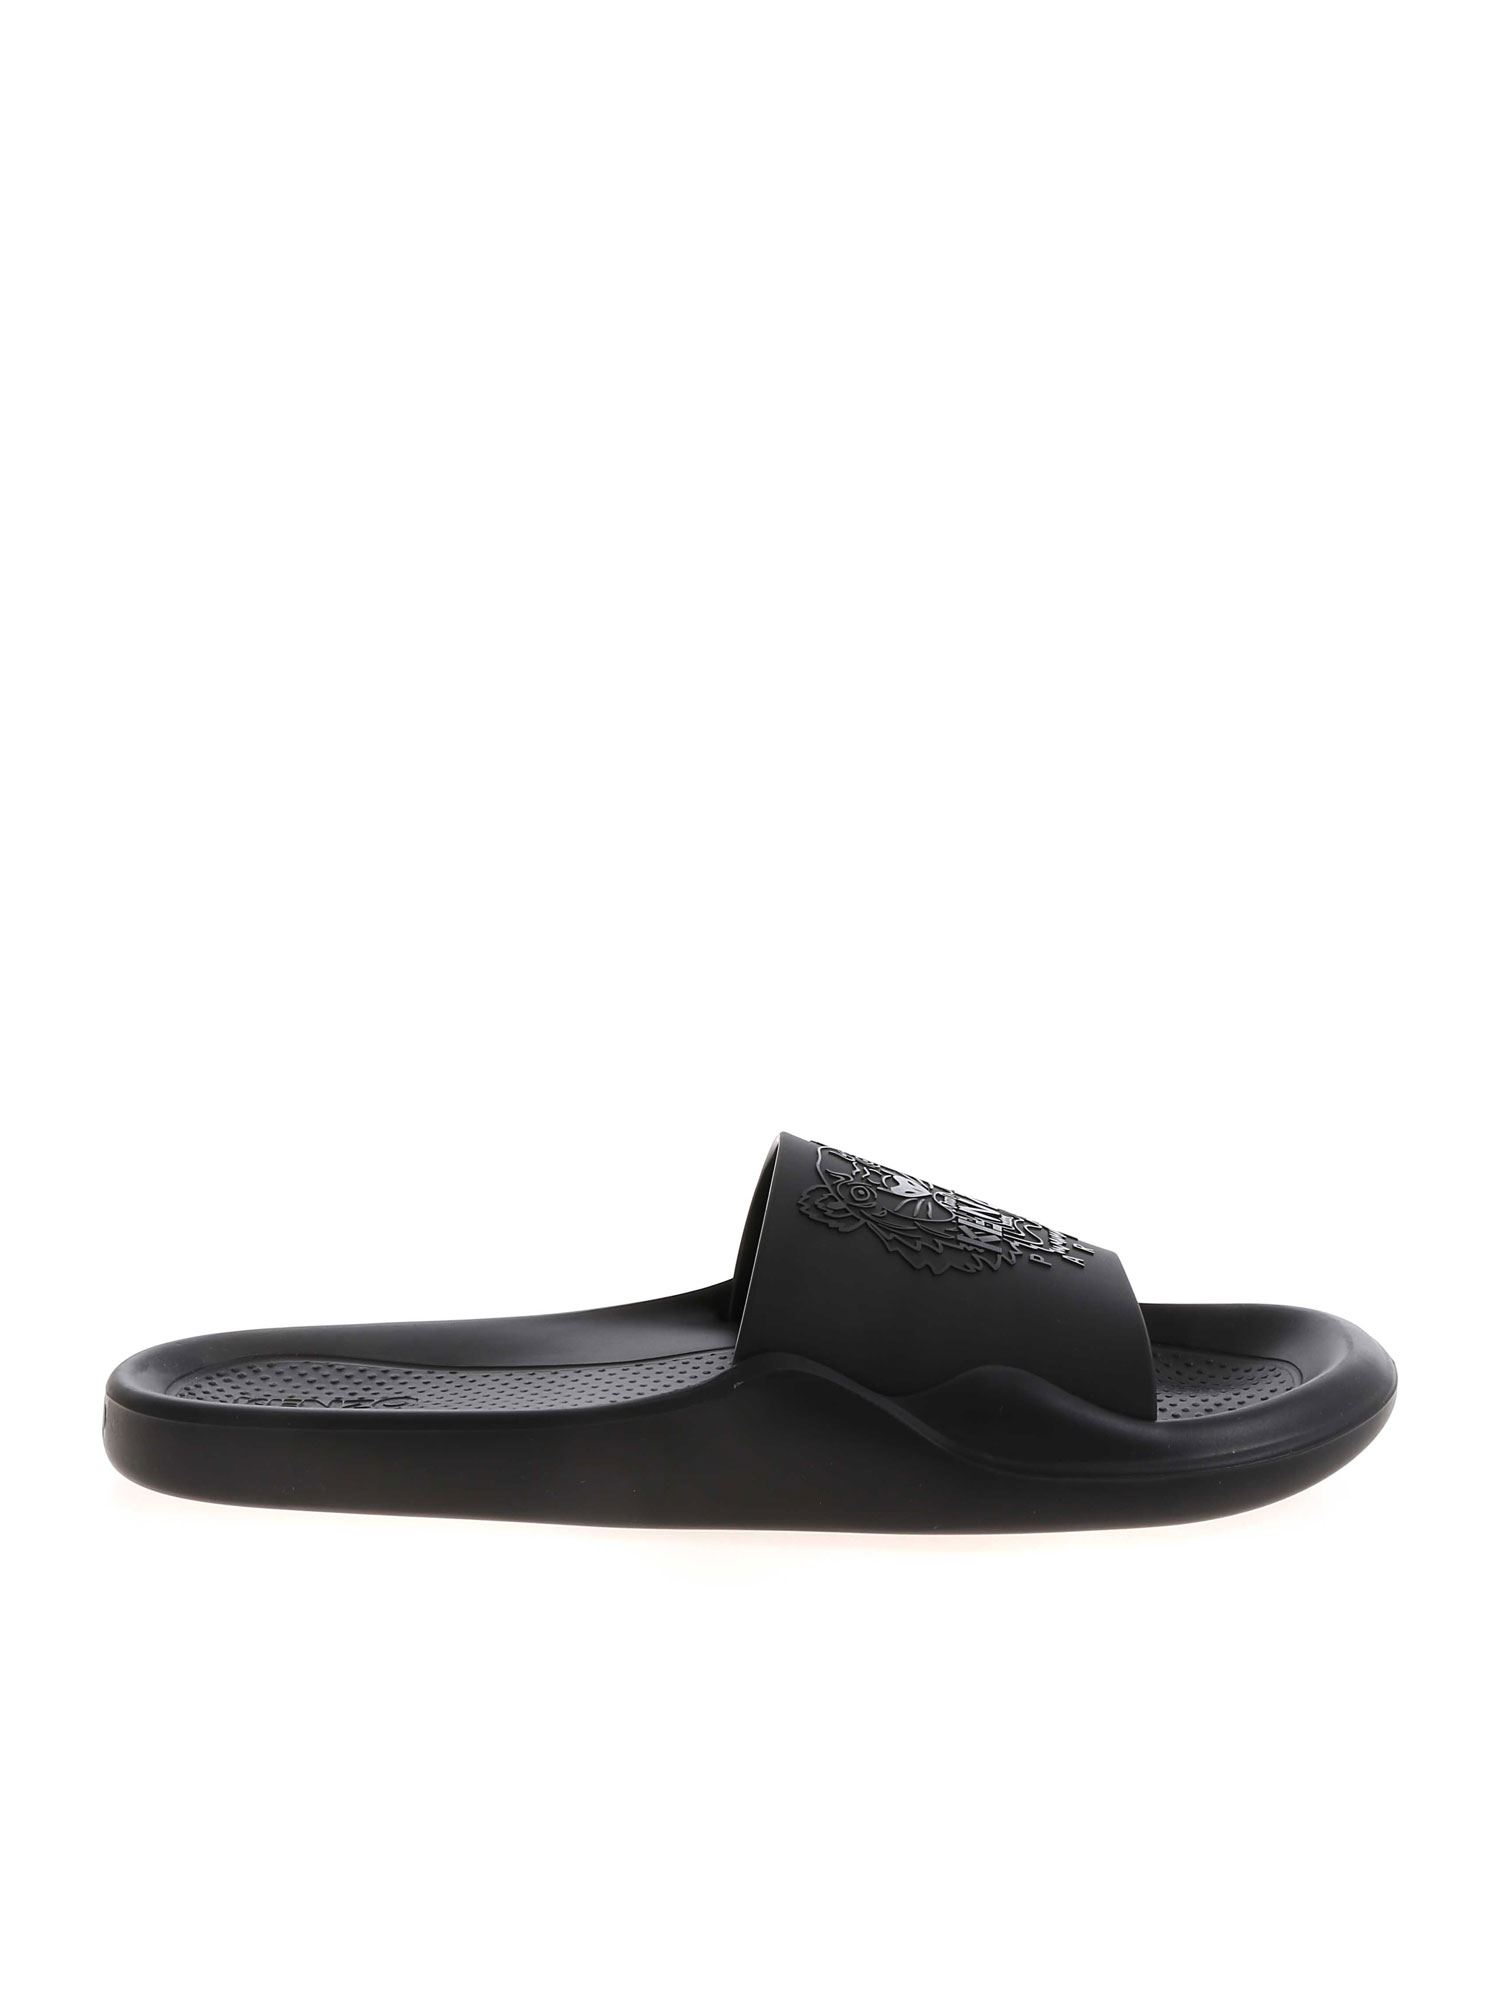 Kenzo LOGO DETAIL SLIPPERS IN BLACK